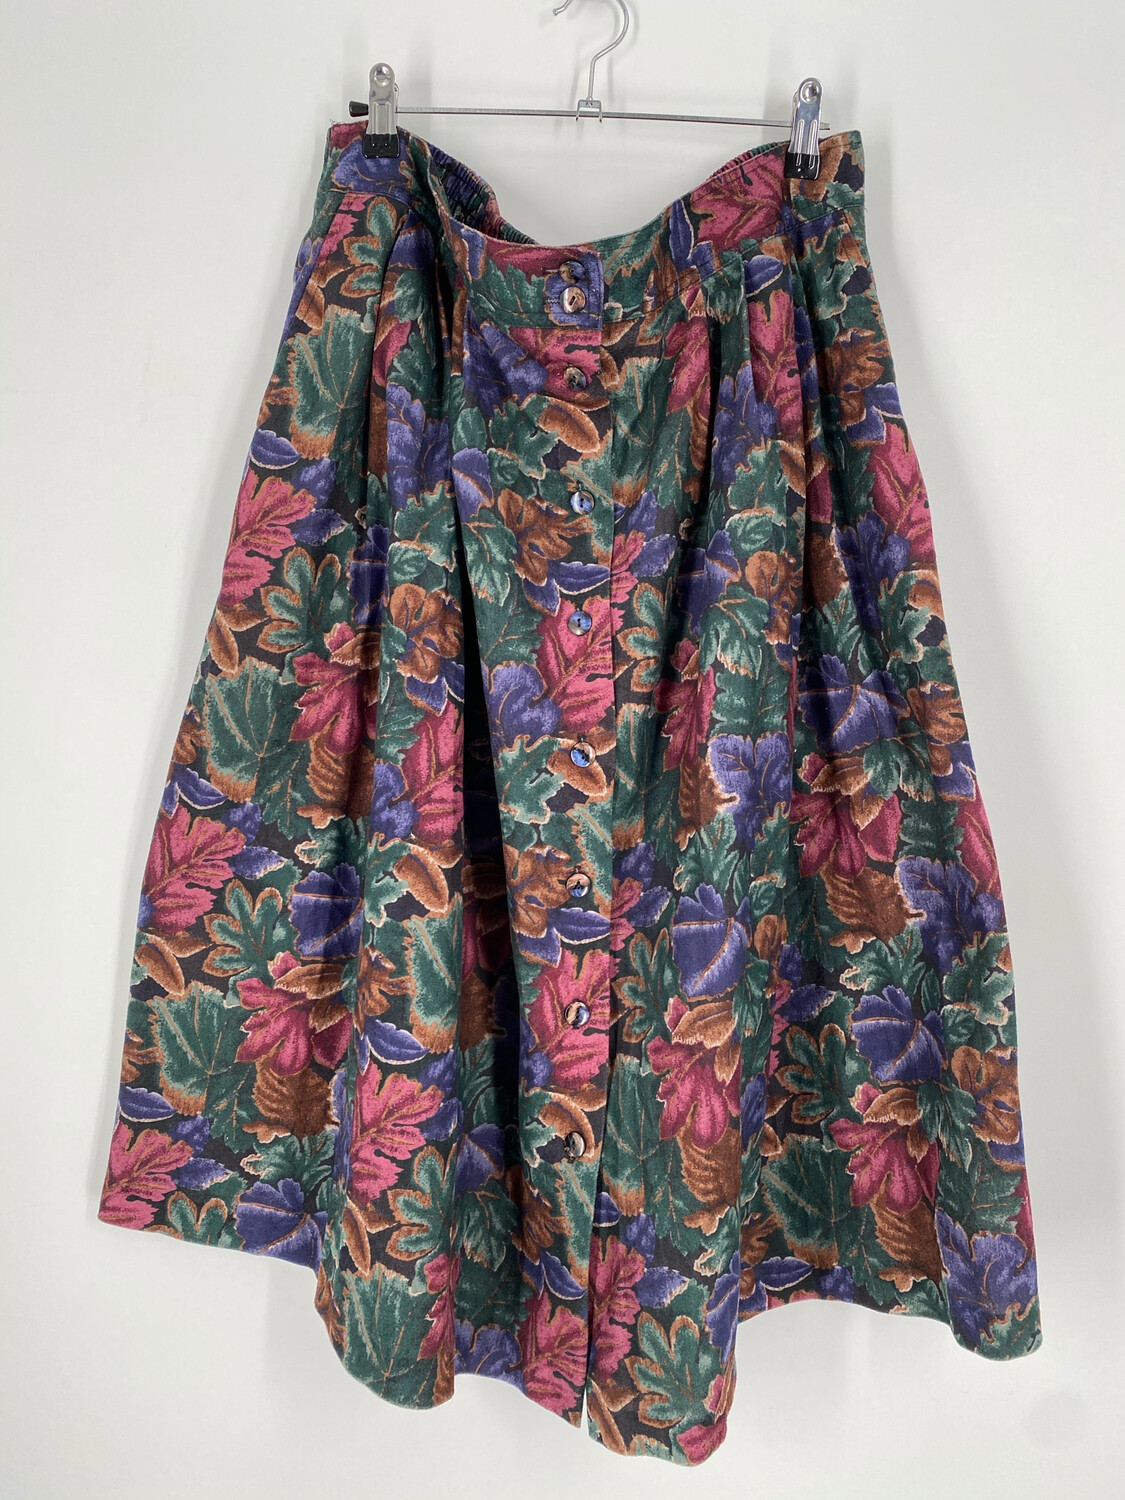 Wentworth Gallery Floral Vintage Skirt Size 36